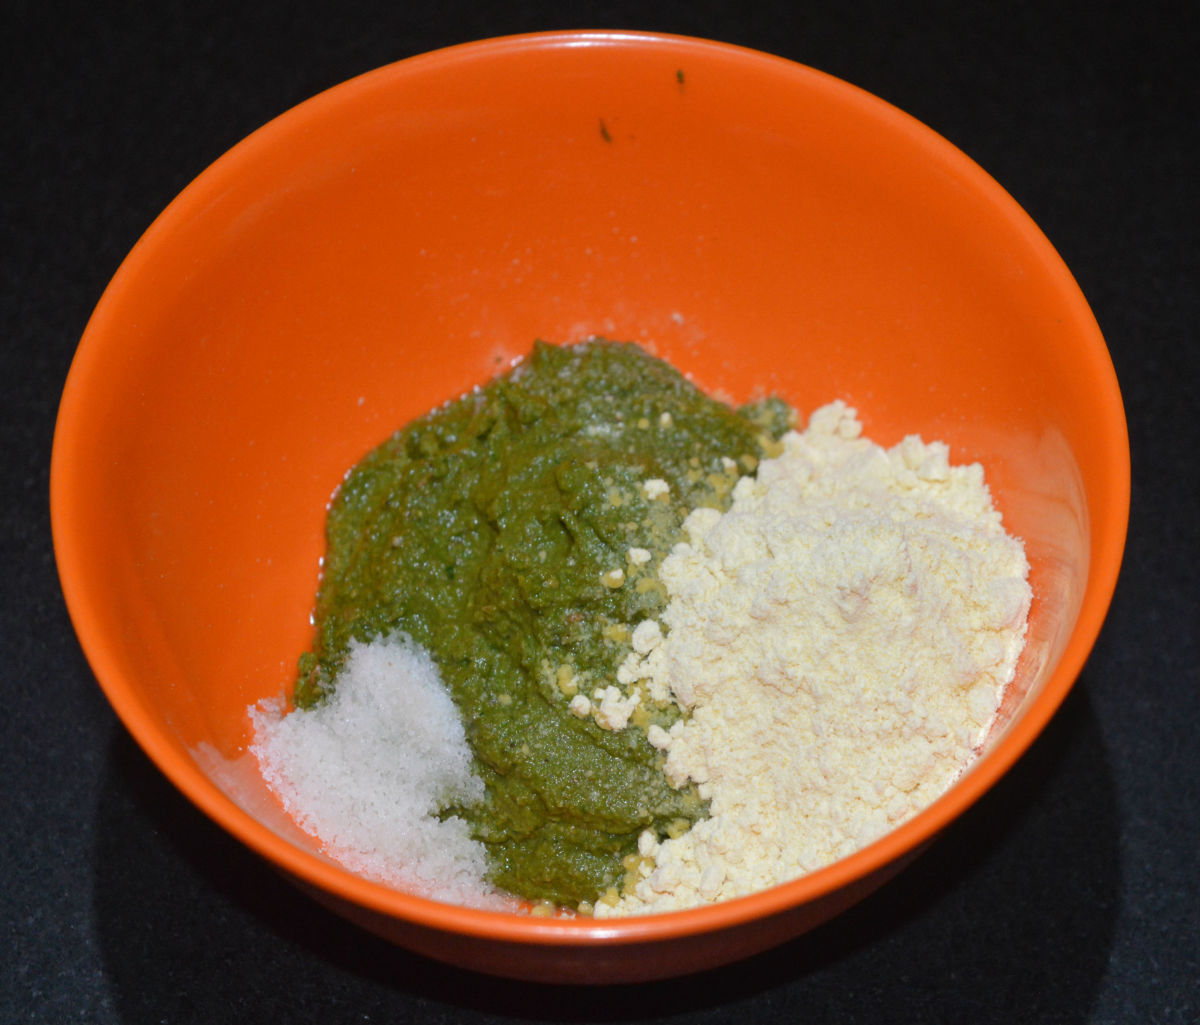 Step three: Transfer the paste to a mixing bowl. Add chickpea flour (besan) and salt. Add 2 tablespoons of water and mix well.